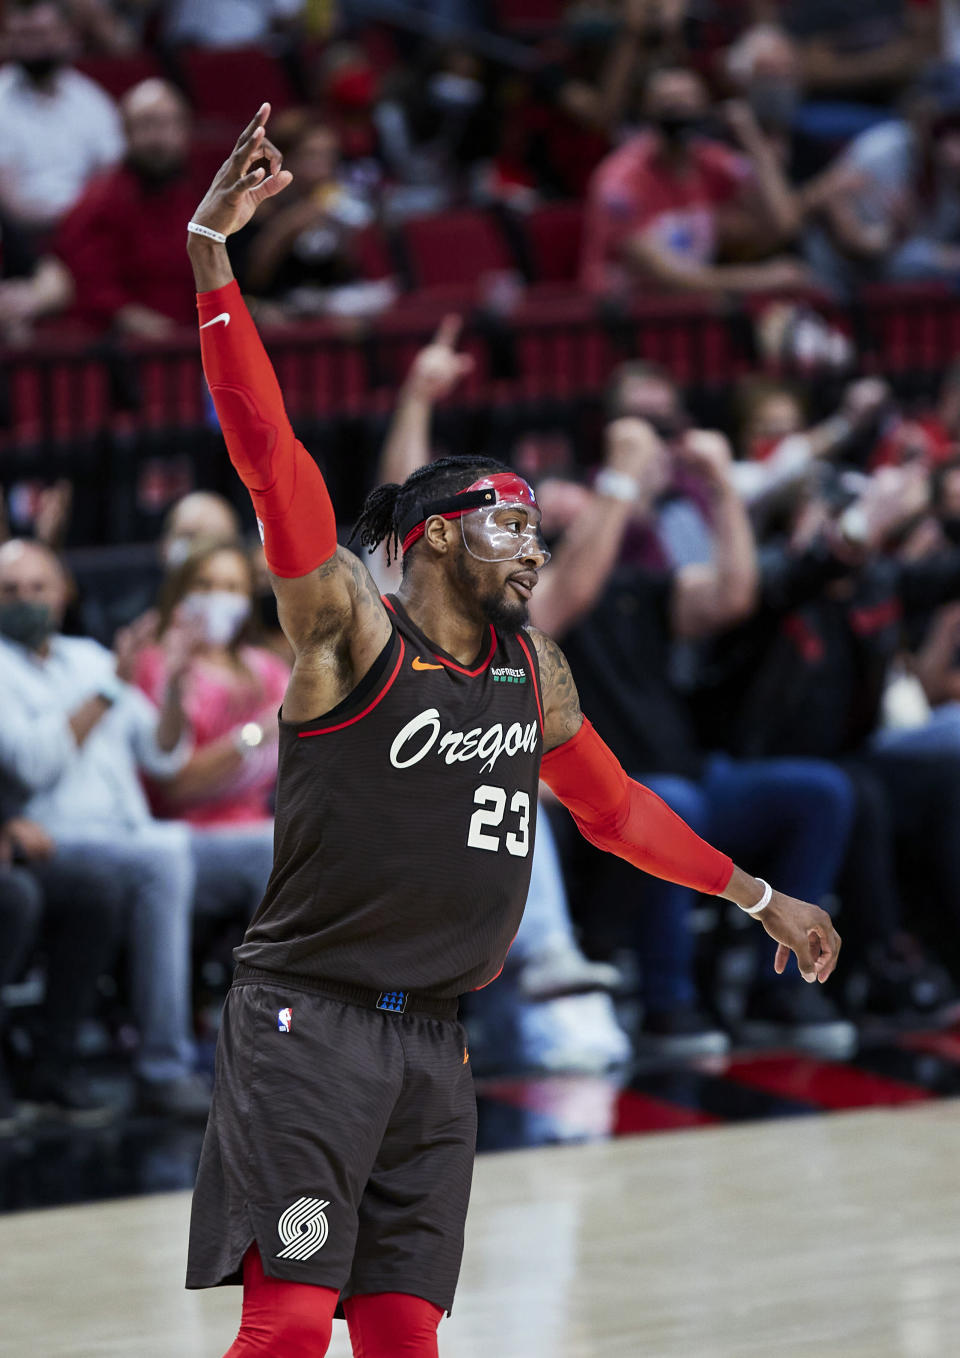 Portland Trail Blazers forward Robert Covington reacts after making a 3-point basket against the Denver Nuggets during the second half of Game 6 of an NBA basketball first-round playoff series Thursday, June 3, 2021, in Portland, Ore. (AP Photo/Craig Mitchelldyer)